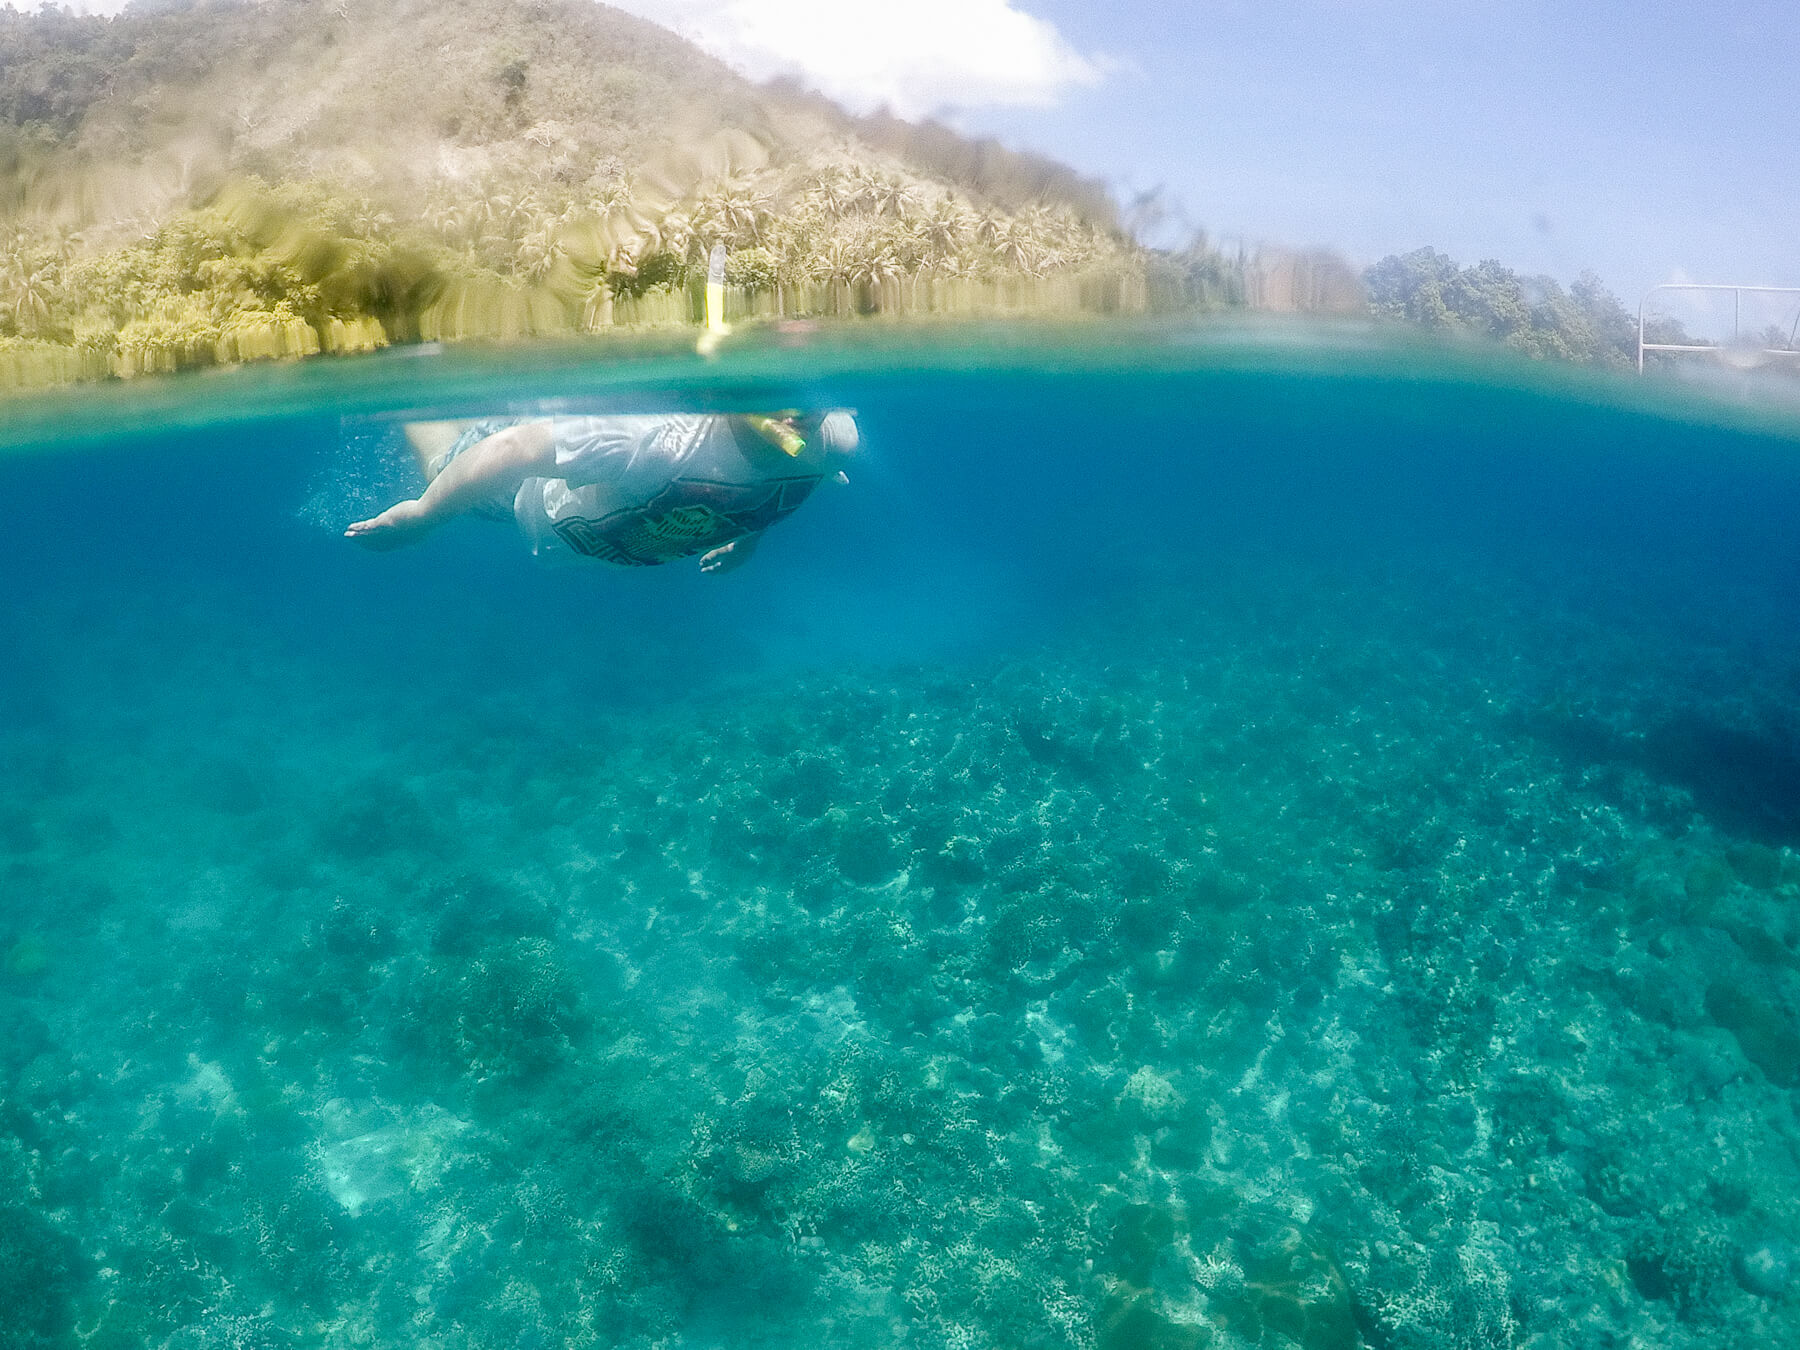 Looking underwater at someone snorkelling, with half of the image seen underwater and the other half above